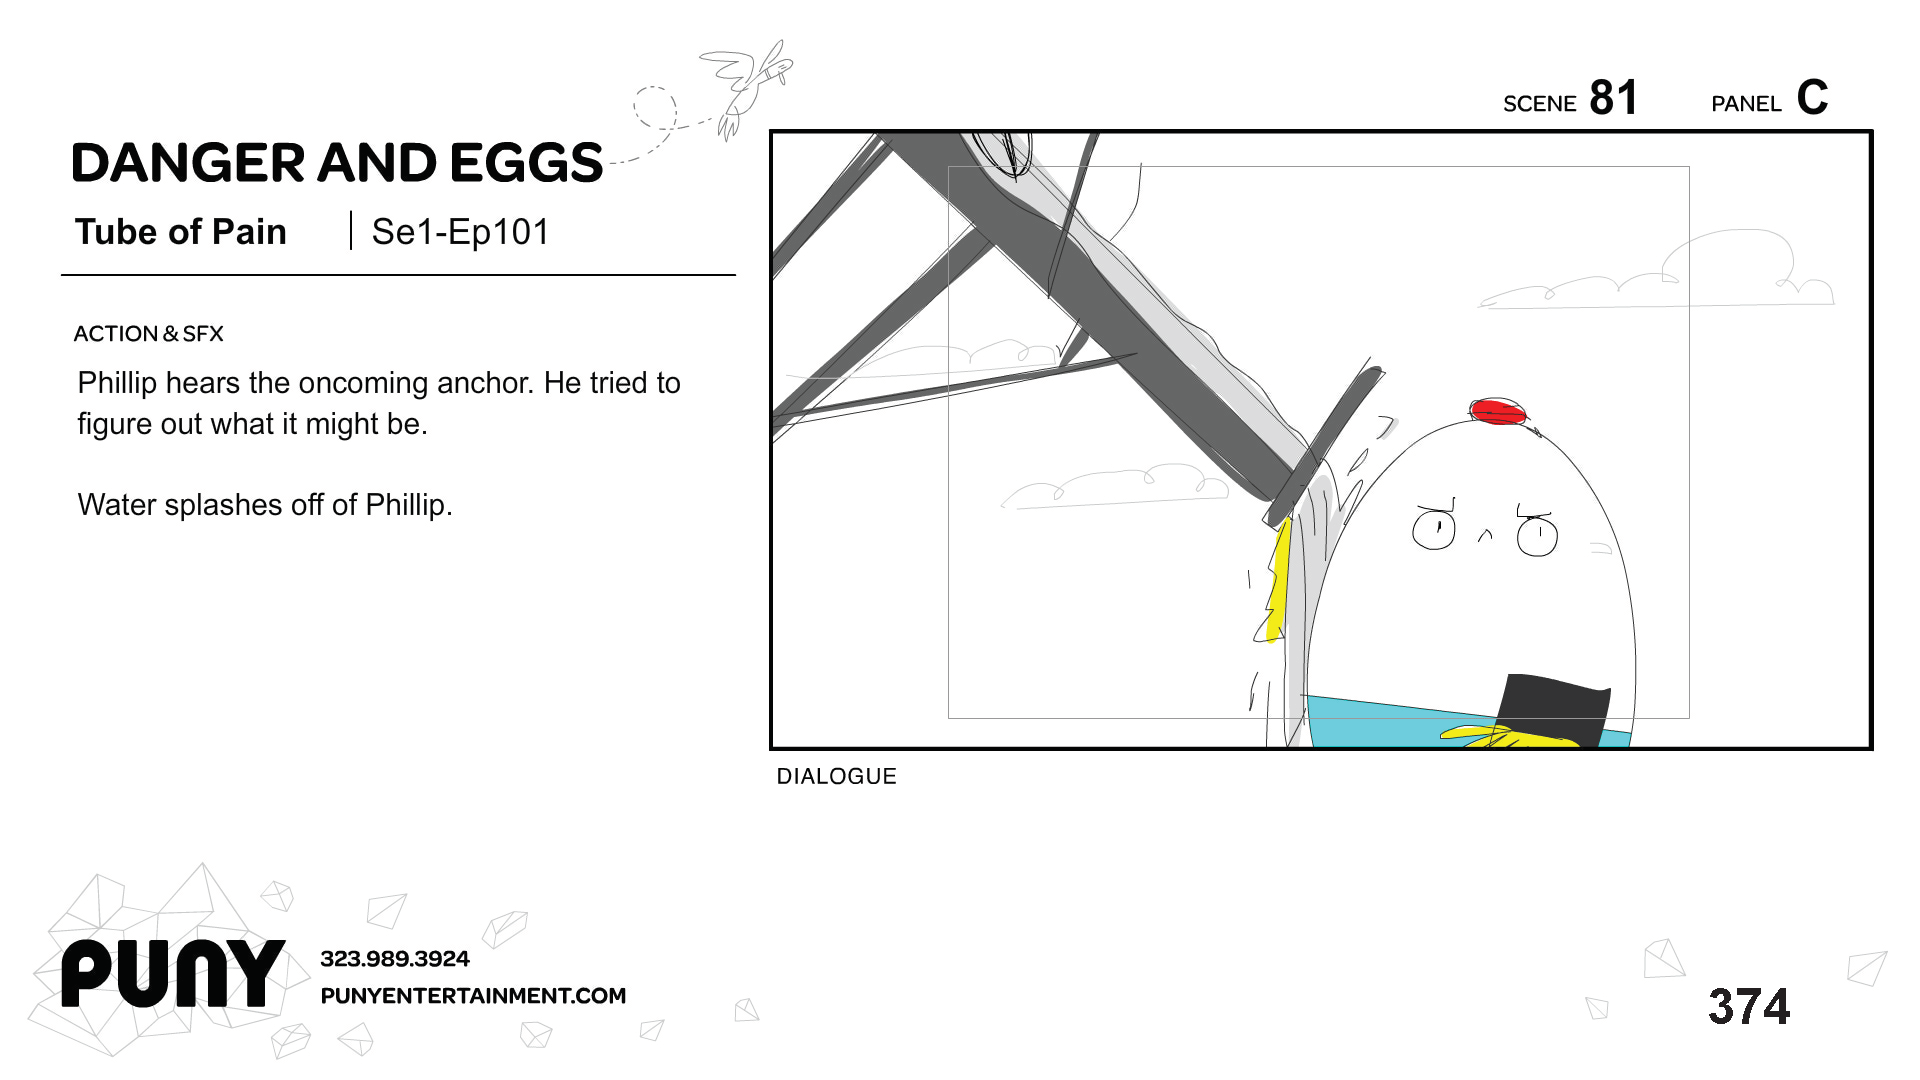 MikeOwens_STORYBOARDS_DangerAndEggs_Page_269.png